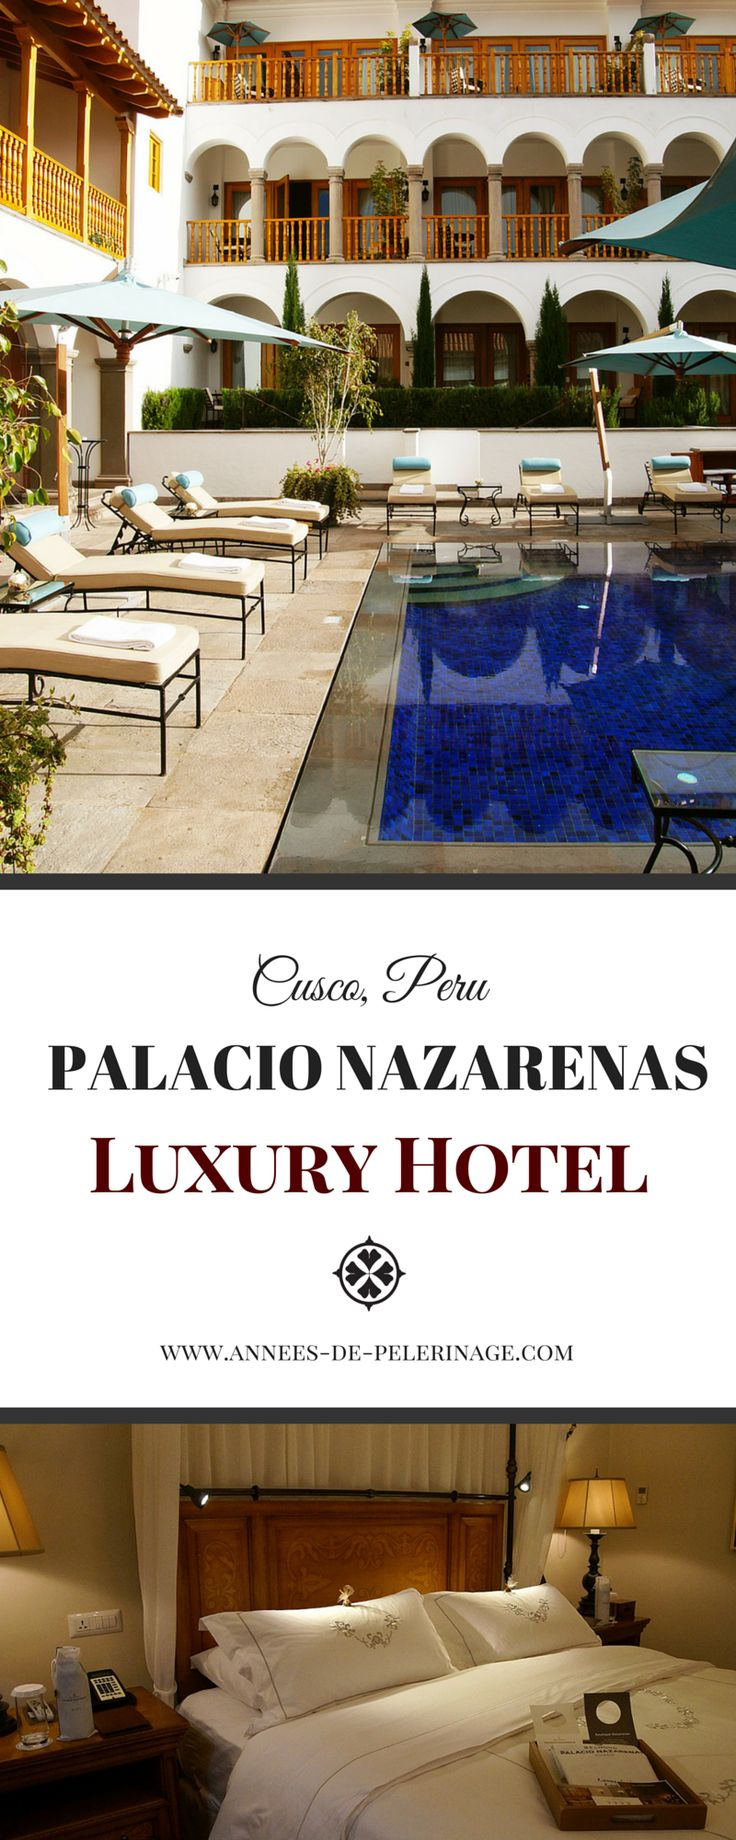 A review of the palacio nazarenas luxury hotel in cusco ive been there